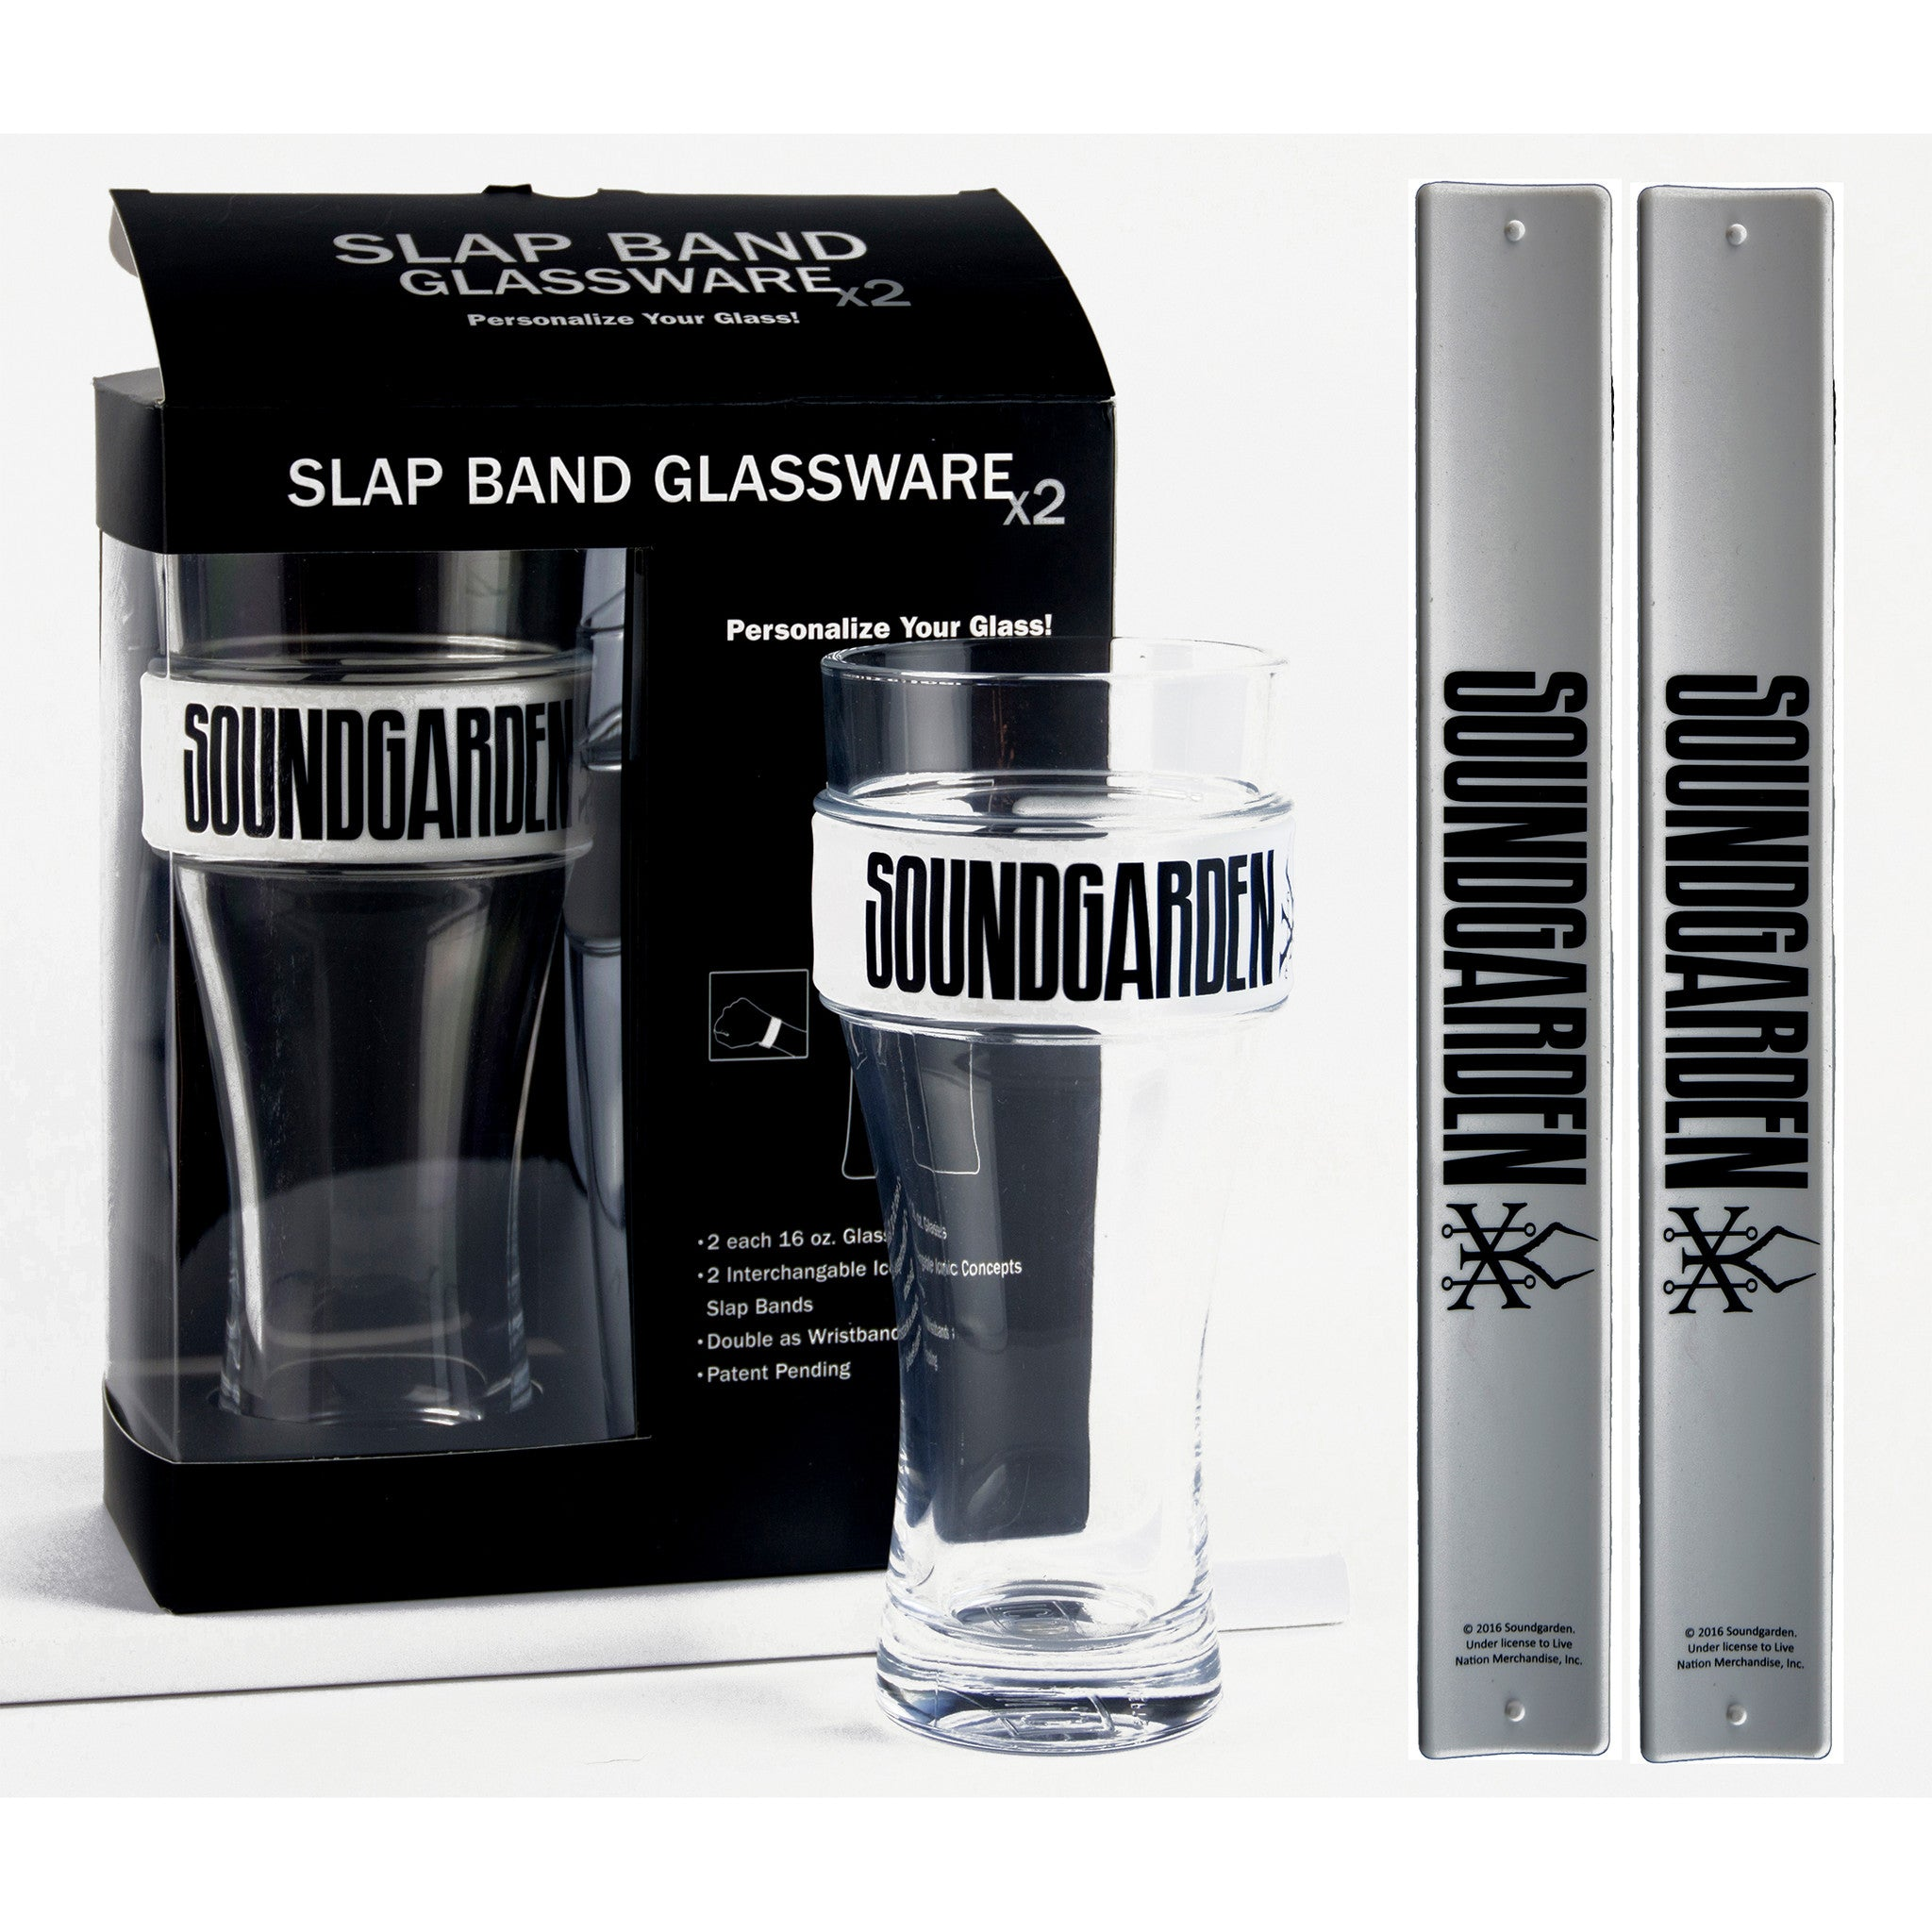 Soundgarden Slap Band Glassware - 2 Pack Slap Band Glassware w/White Slap Band w/Black Soundgarden Logo